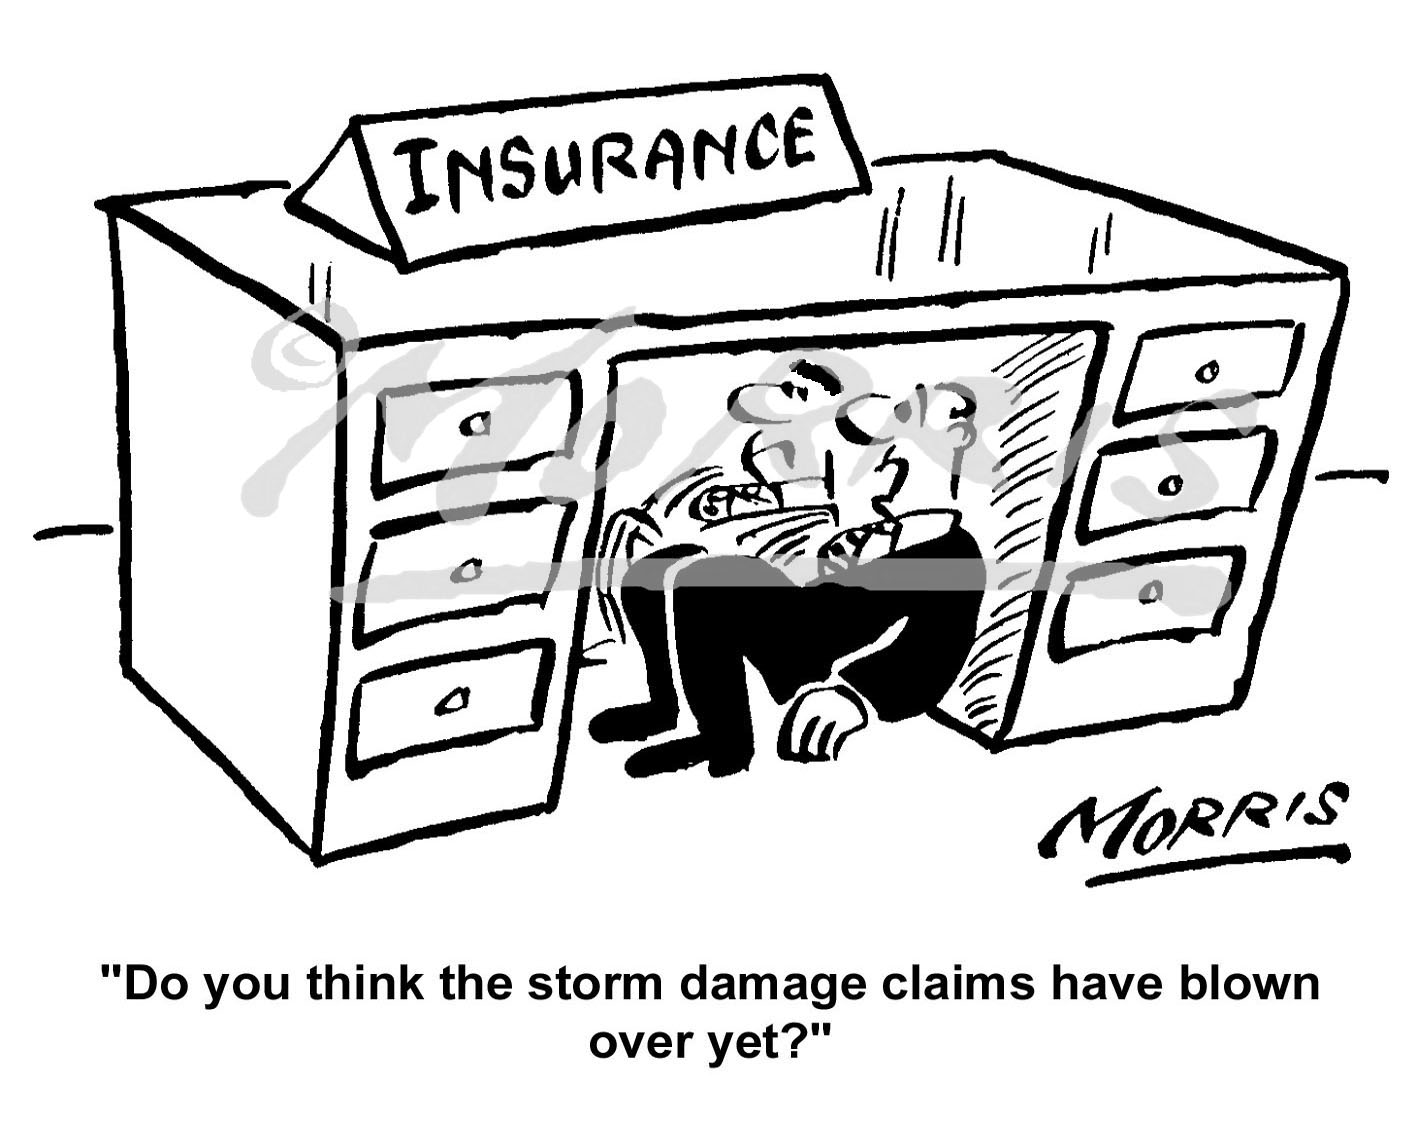 Insurance claim cartoon Ref: 1663bw